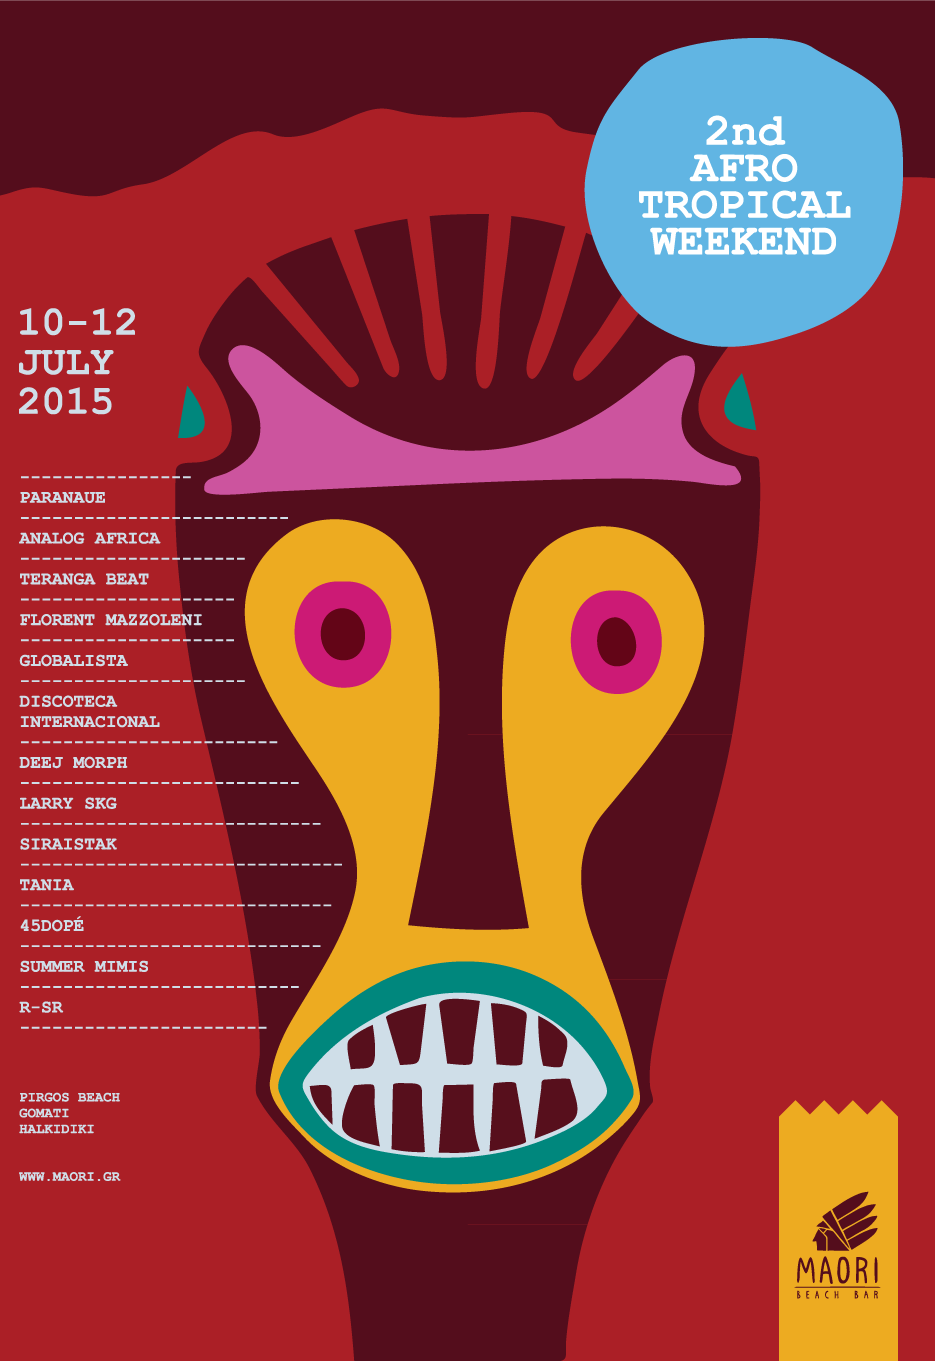 2nd Afro Tropical Weekend - Poster